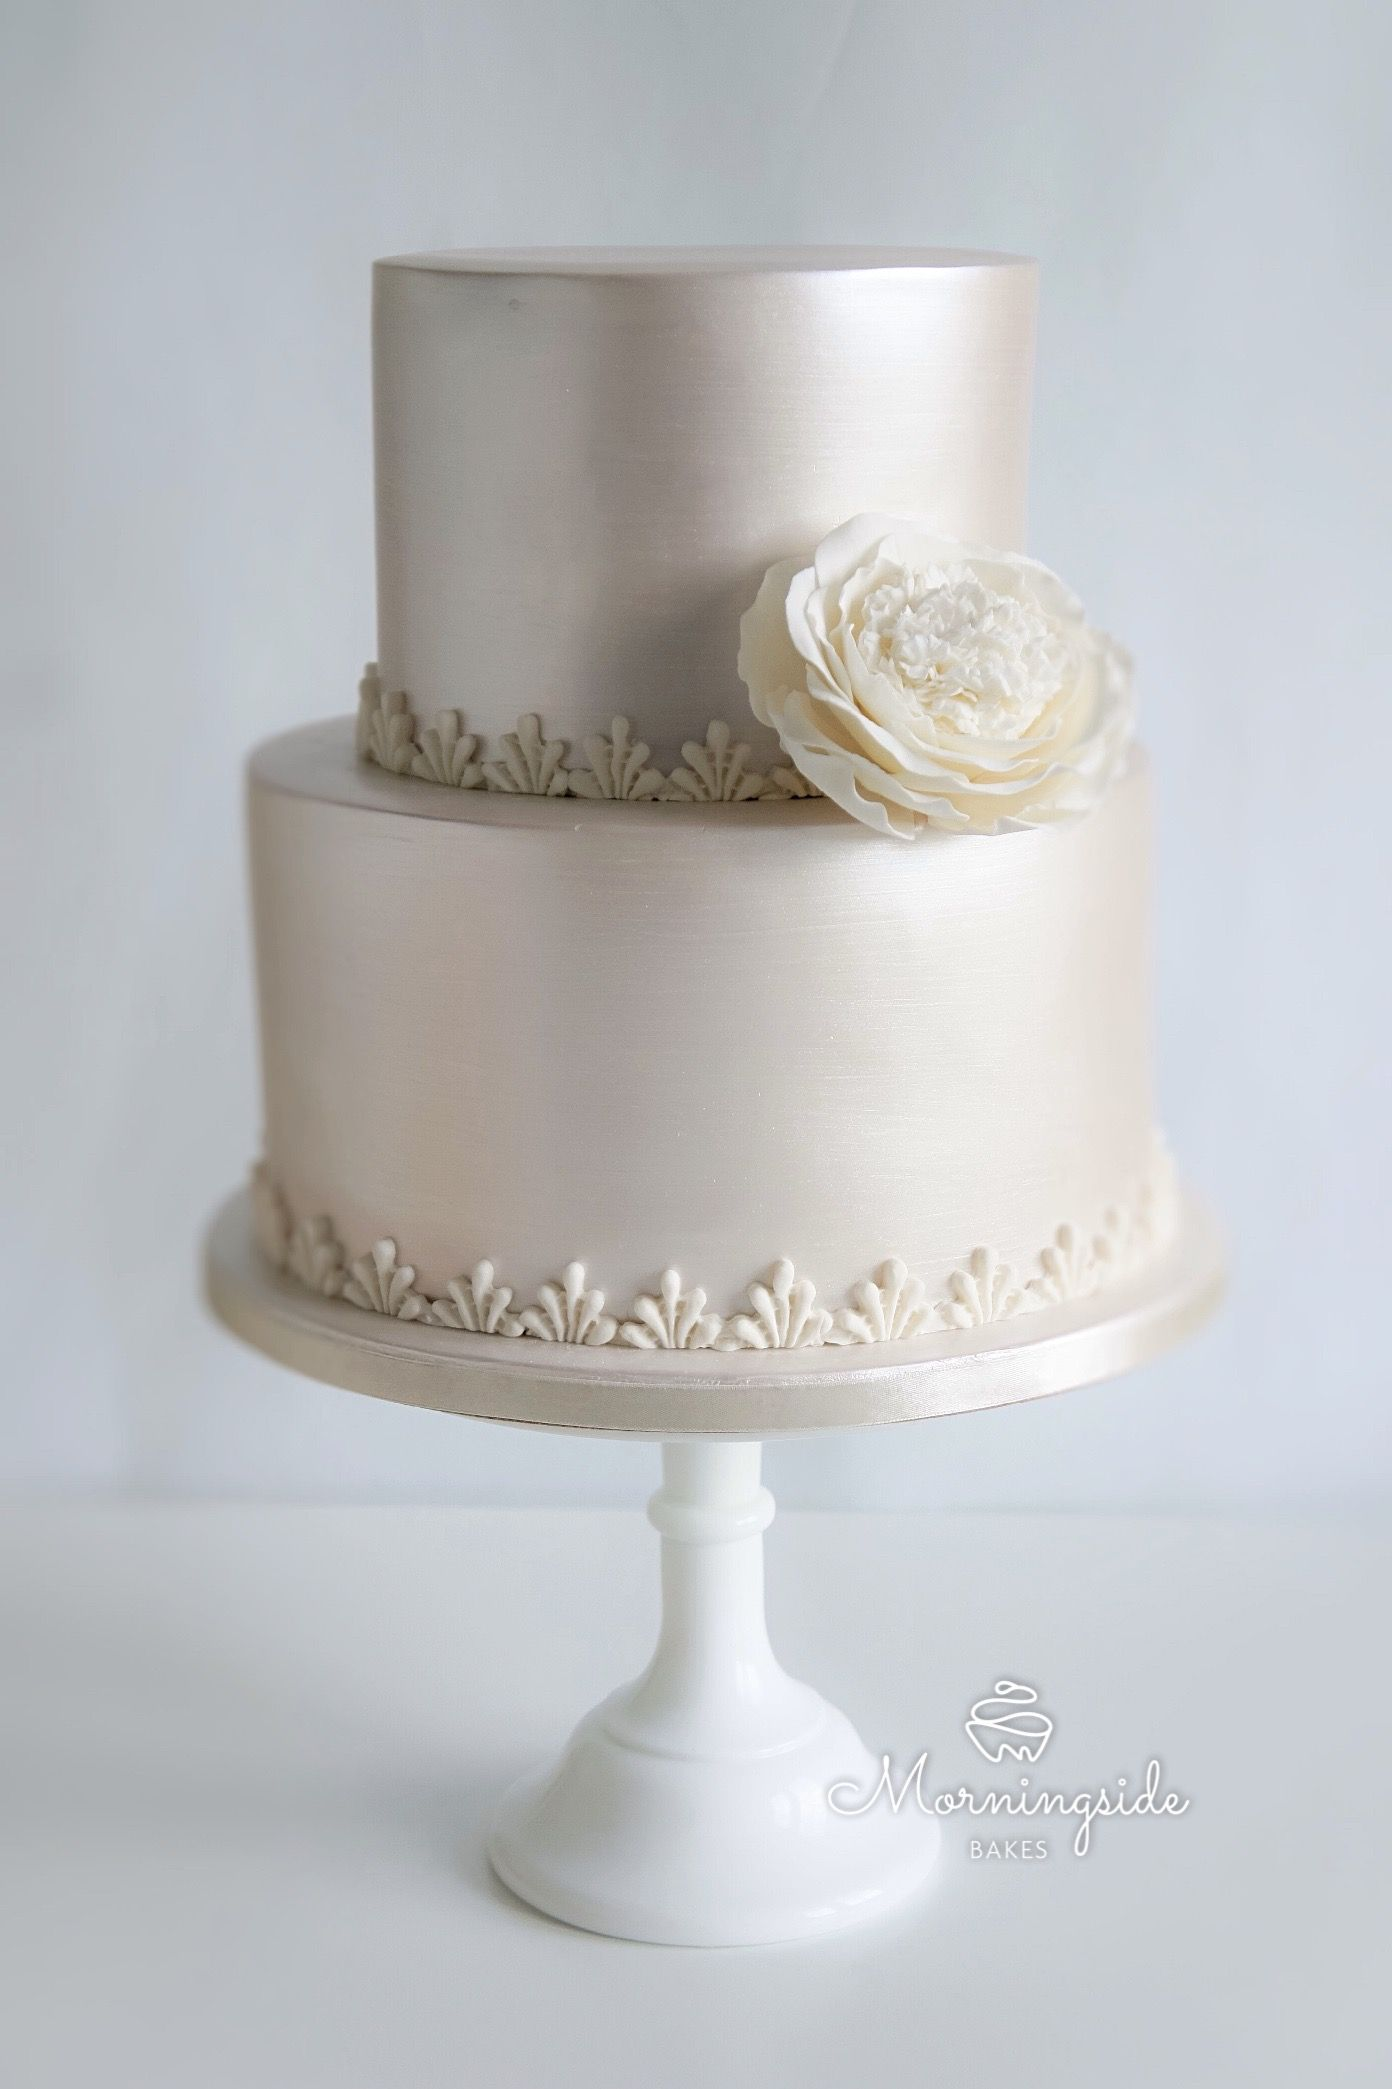 Pearl shimmer lustre wedding cake with large sugar flower